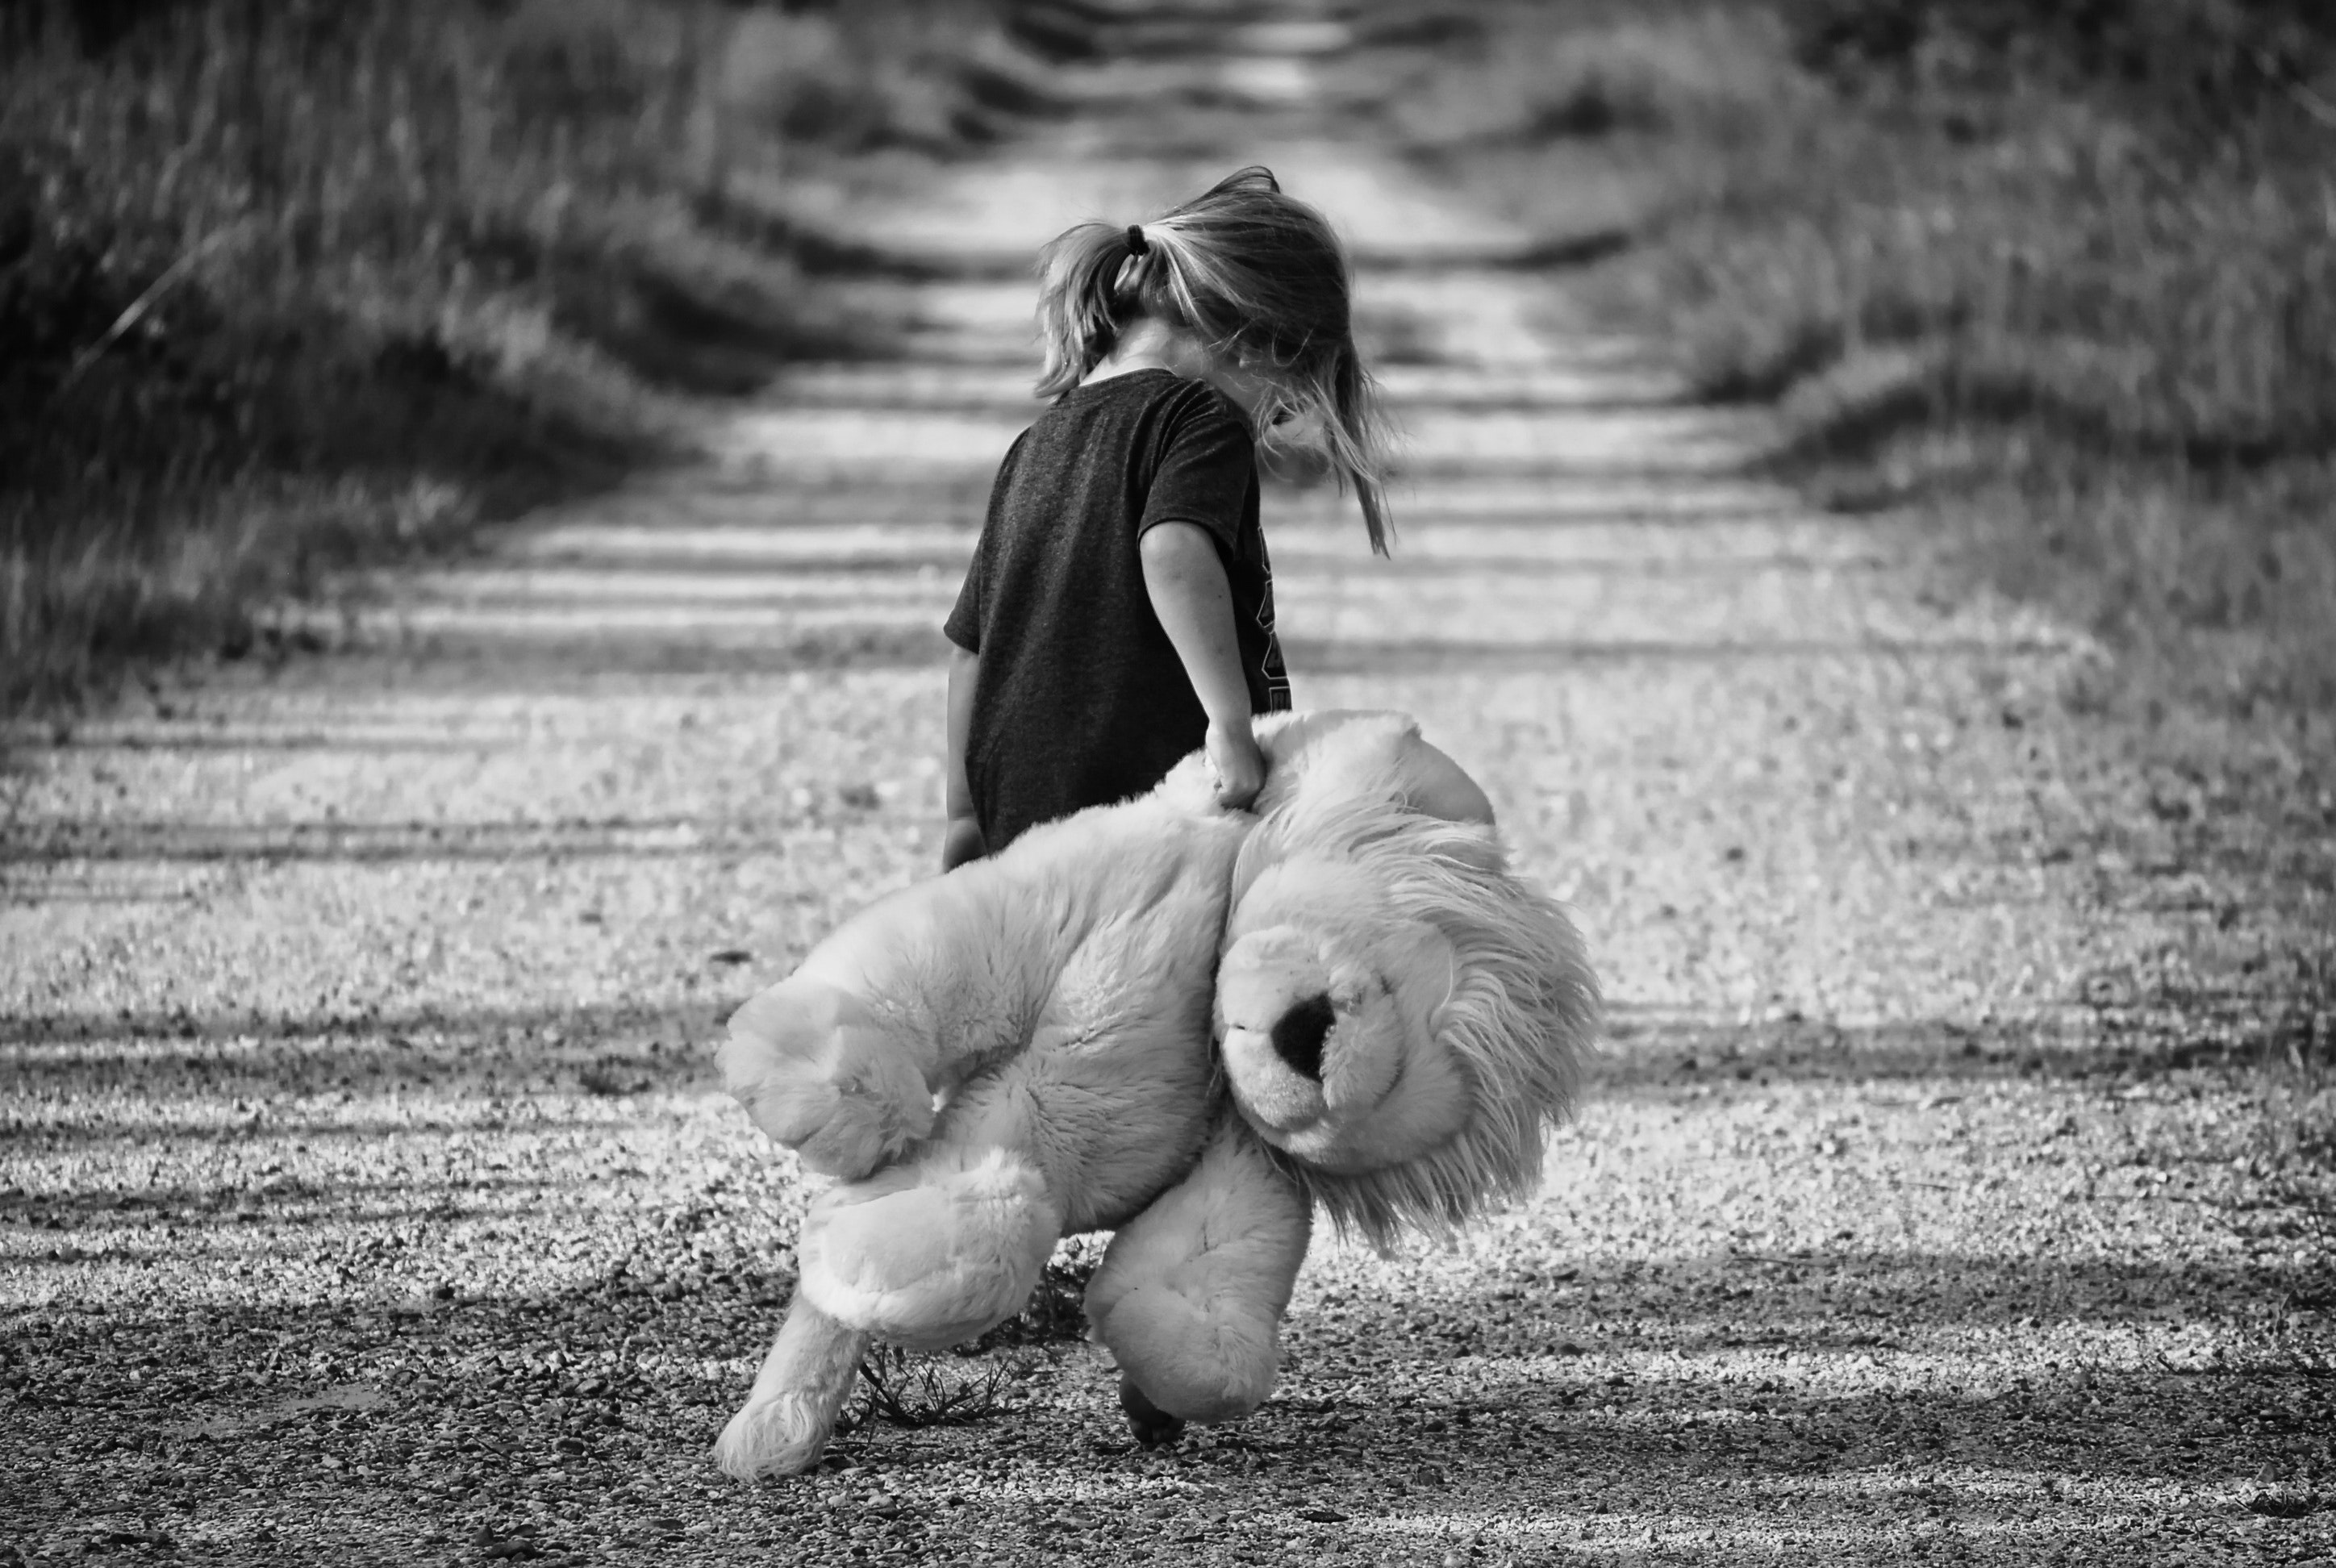 Grayscale photography of girl holding plush toy pixabay